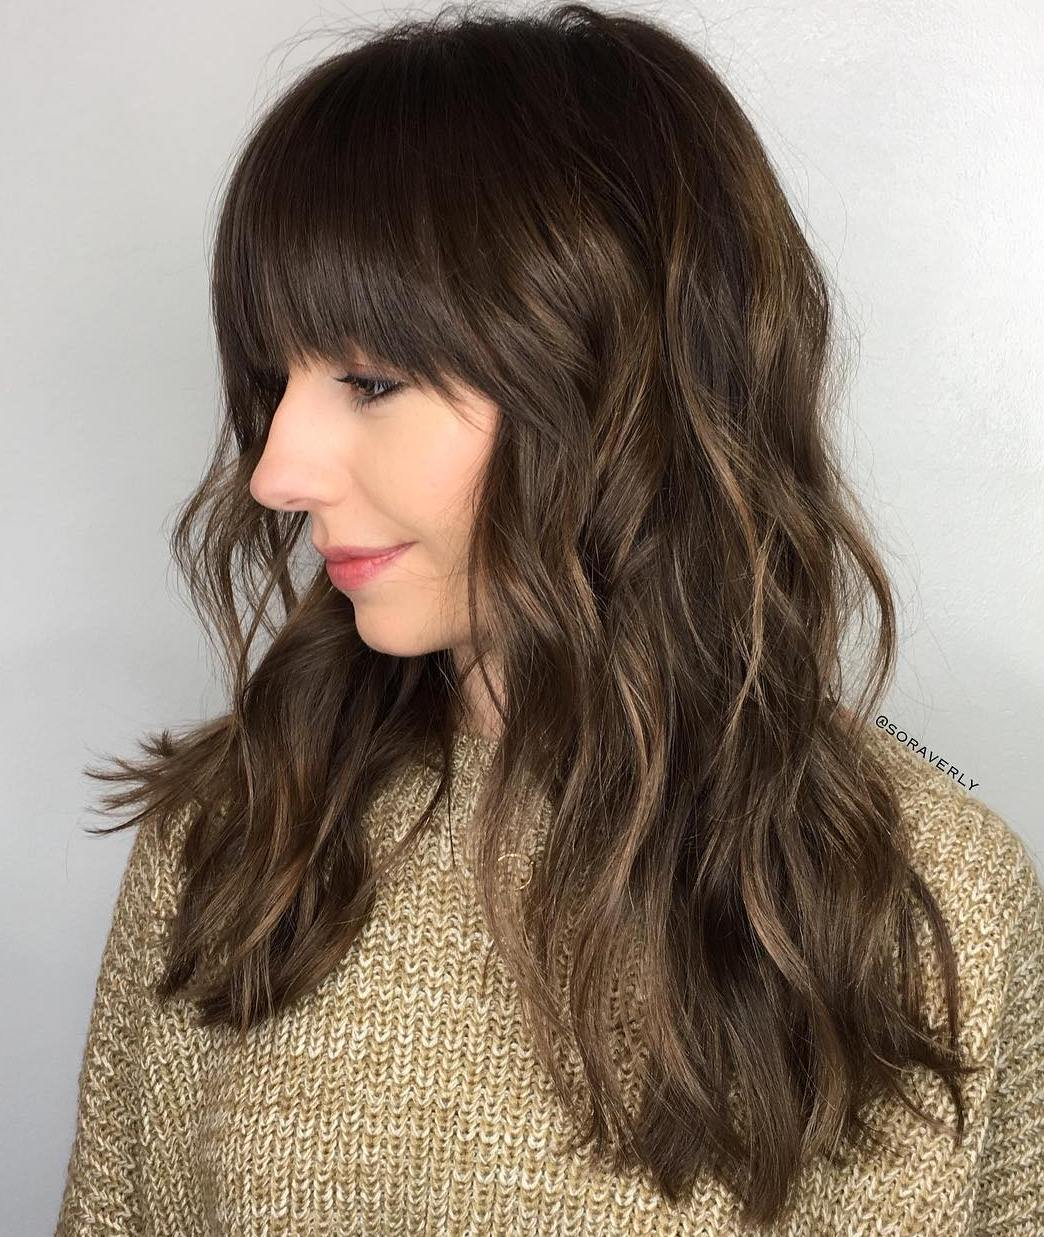 50 ways to wear long layered hair with bangs - hair adviser